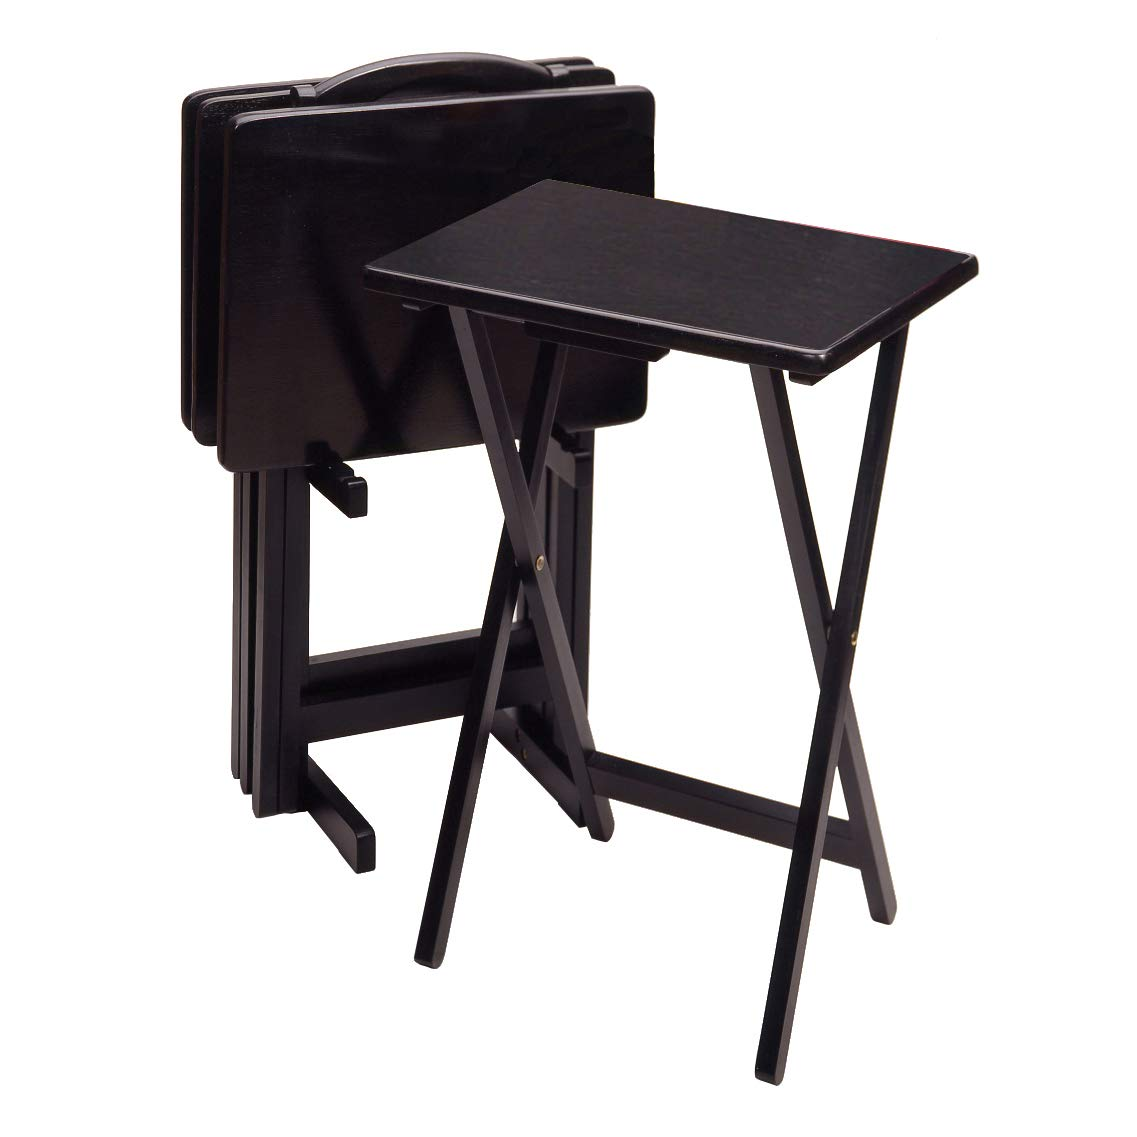 Winsome 22520 Alex TV Tables, Black by Winsome